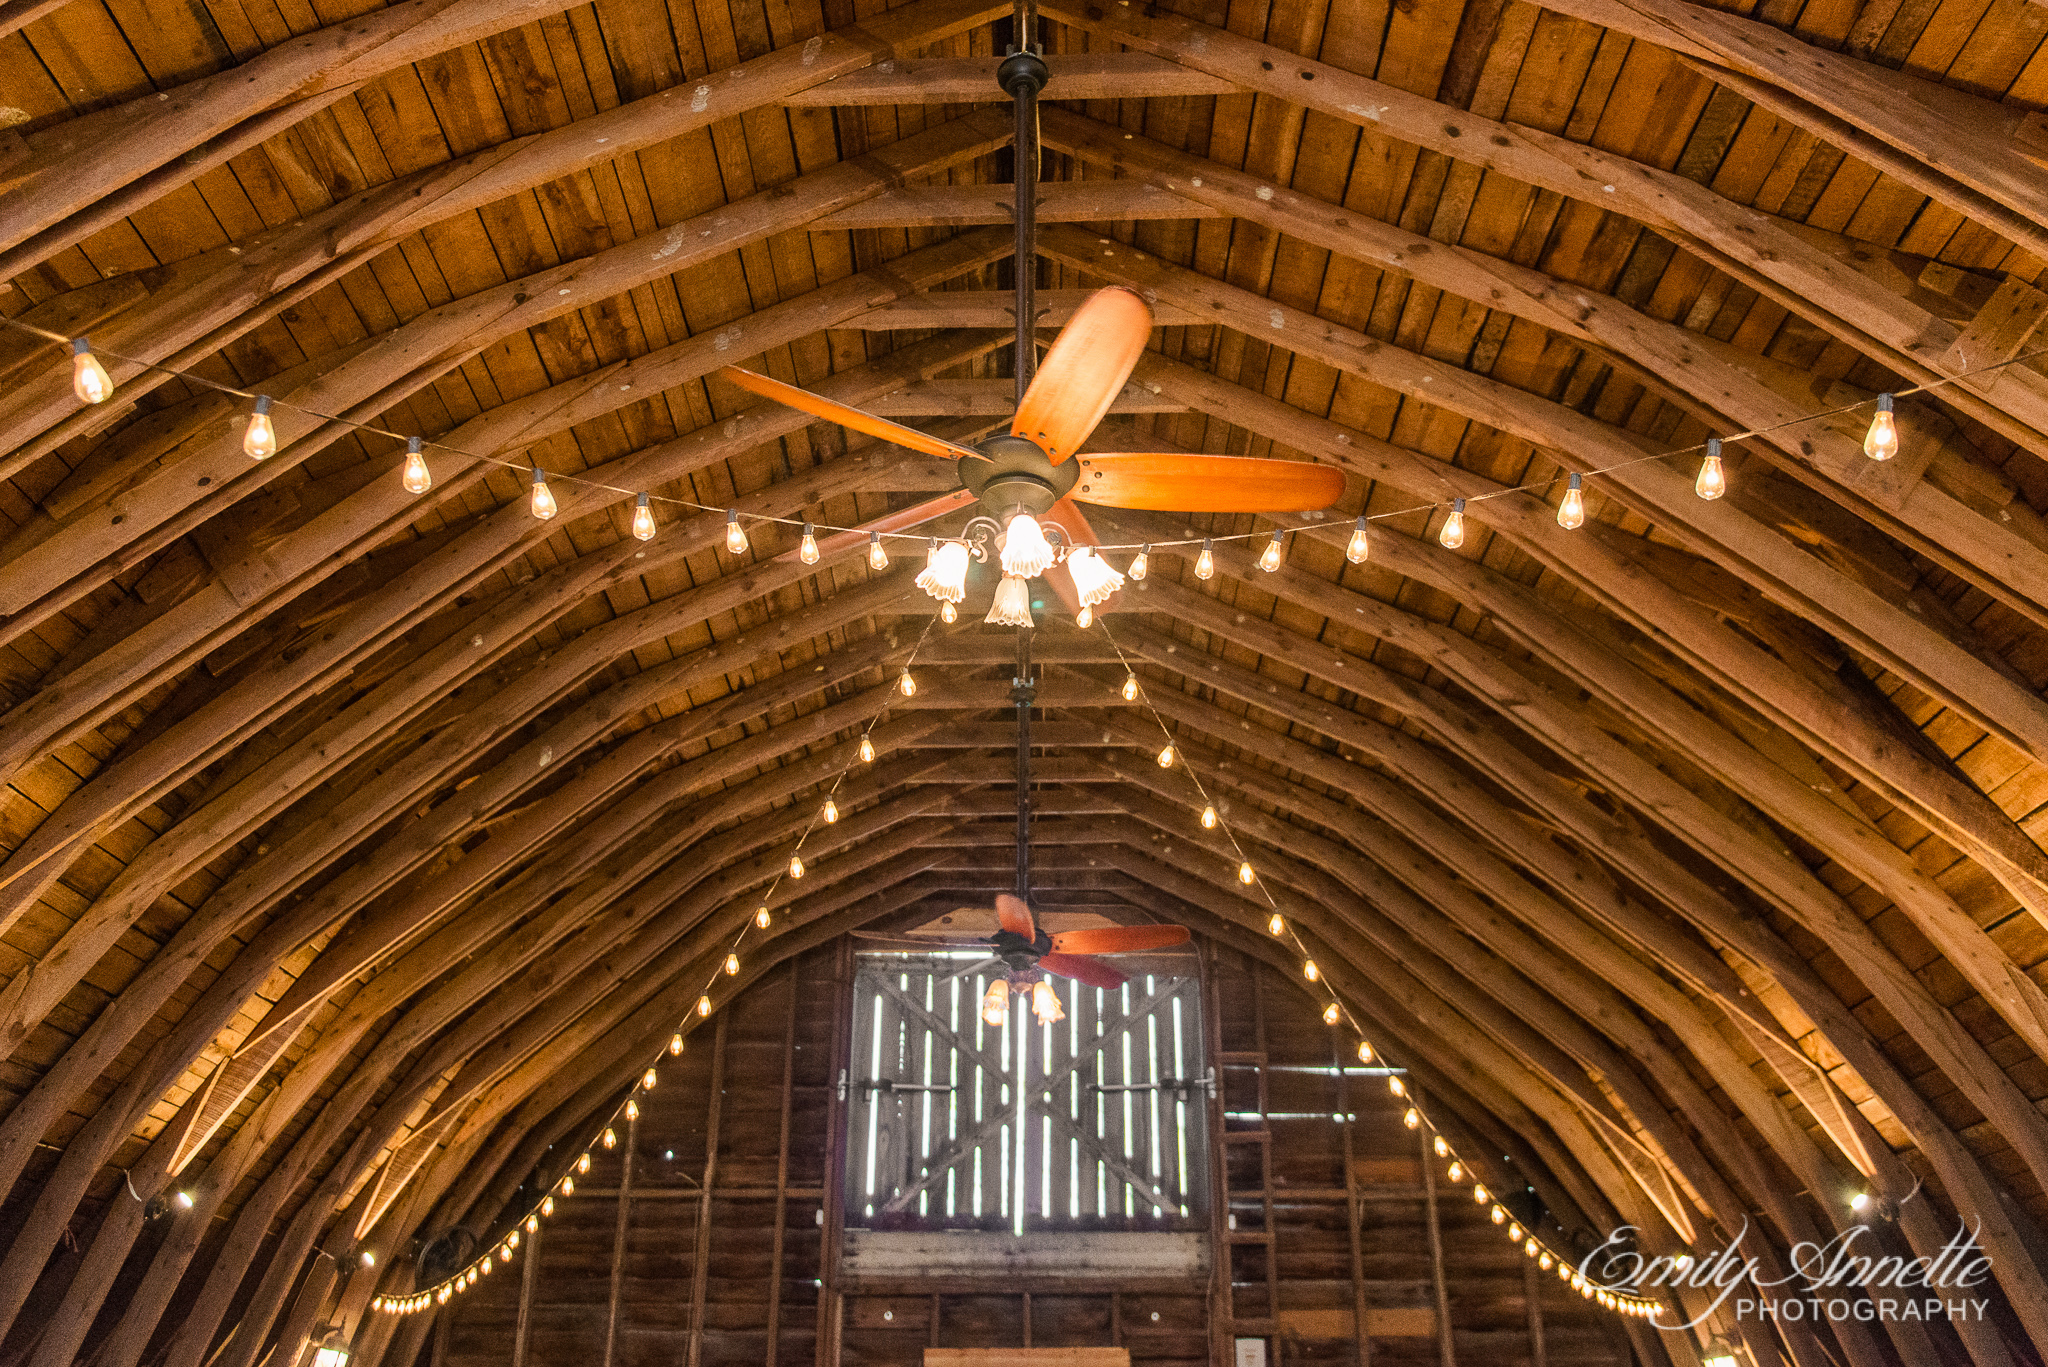 A barn decorated with string lights for a wedding ceremony during a country wedding at Amber Grove near Richmond, Virginia